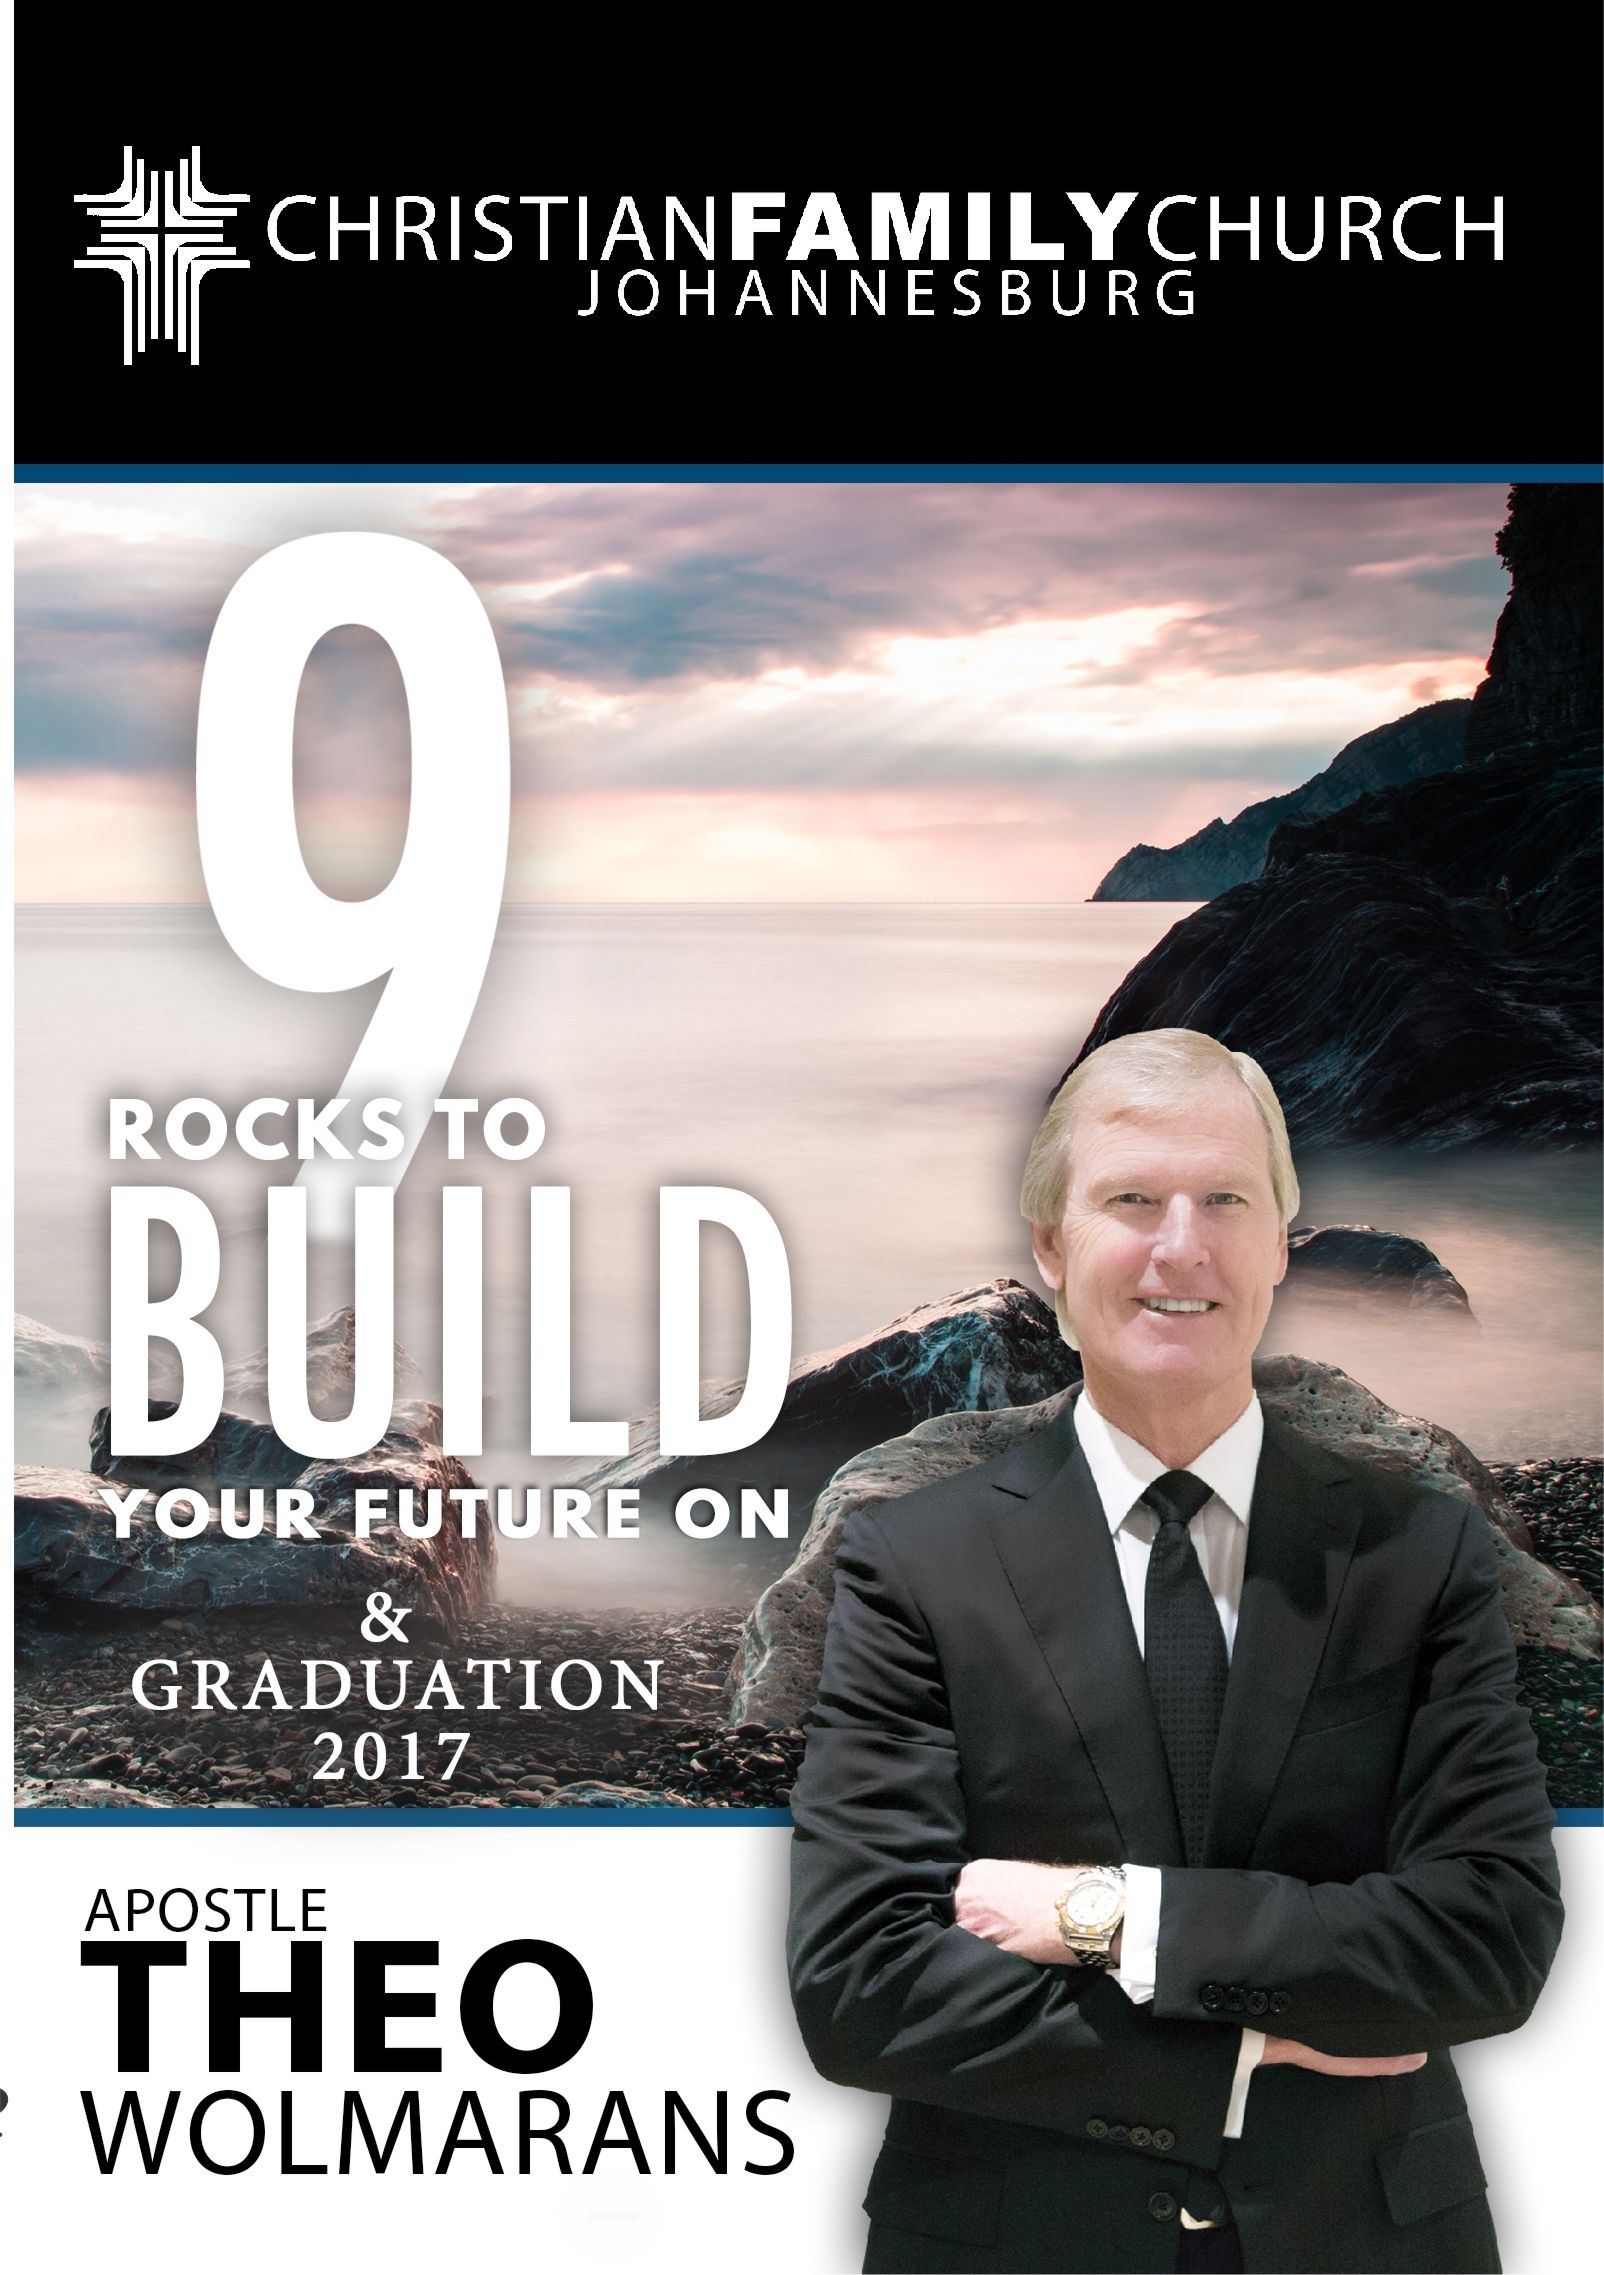 DR THEO WOLMARANS – 9 ROCKS TO BUILD YOUR FUTURE ON CD